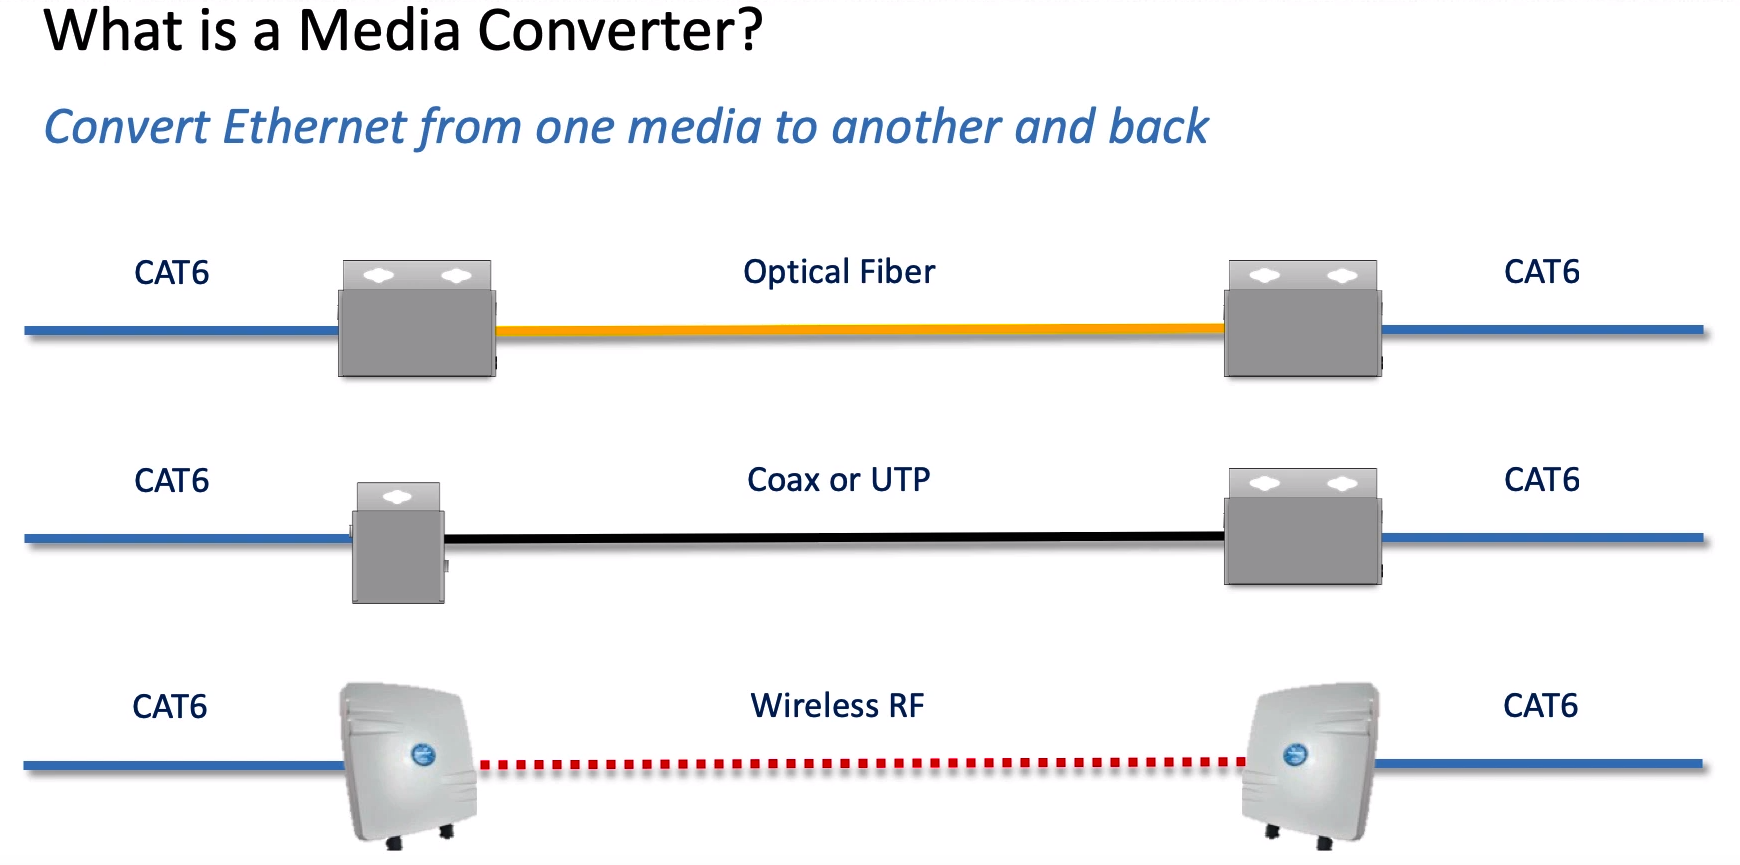 What is a media converter image